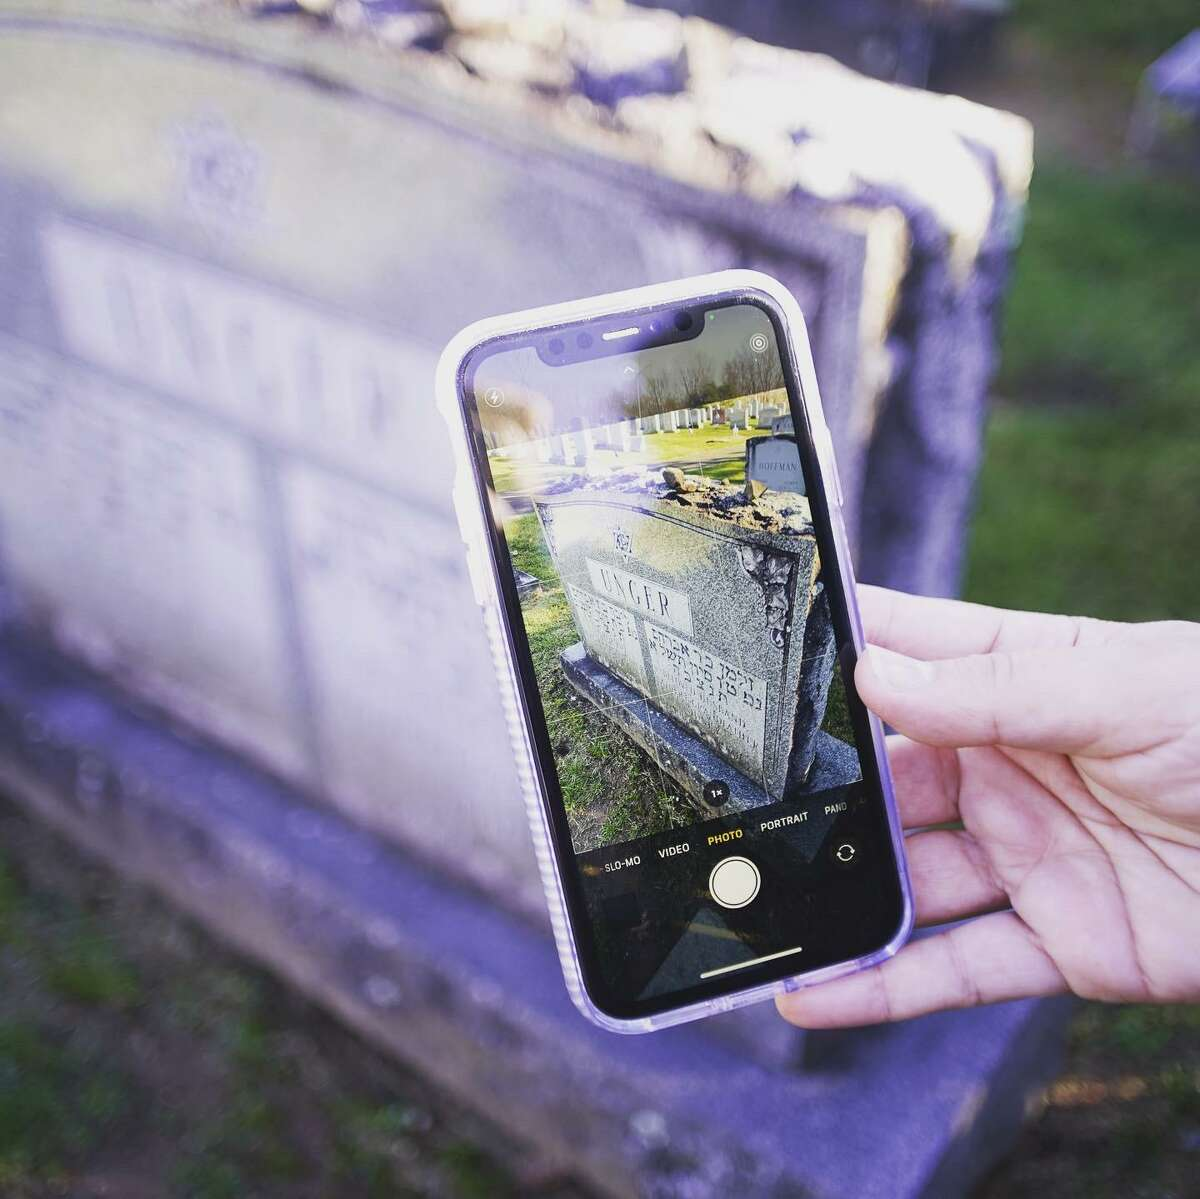 Middletown High School senior Nathan Robillard, a member of Scout Troop 72, completed his Eagle Scout project by photographing and uploading 700 gravestones, using the X app, at the Adath Israel Cemetery on Pine Street.